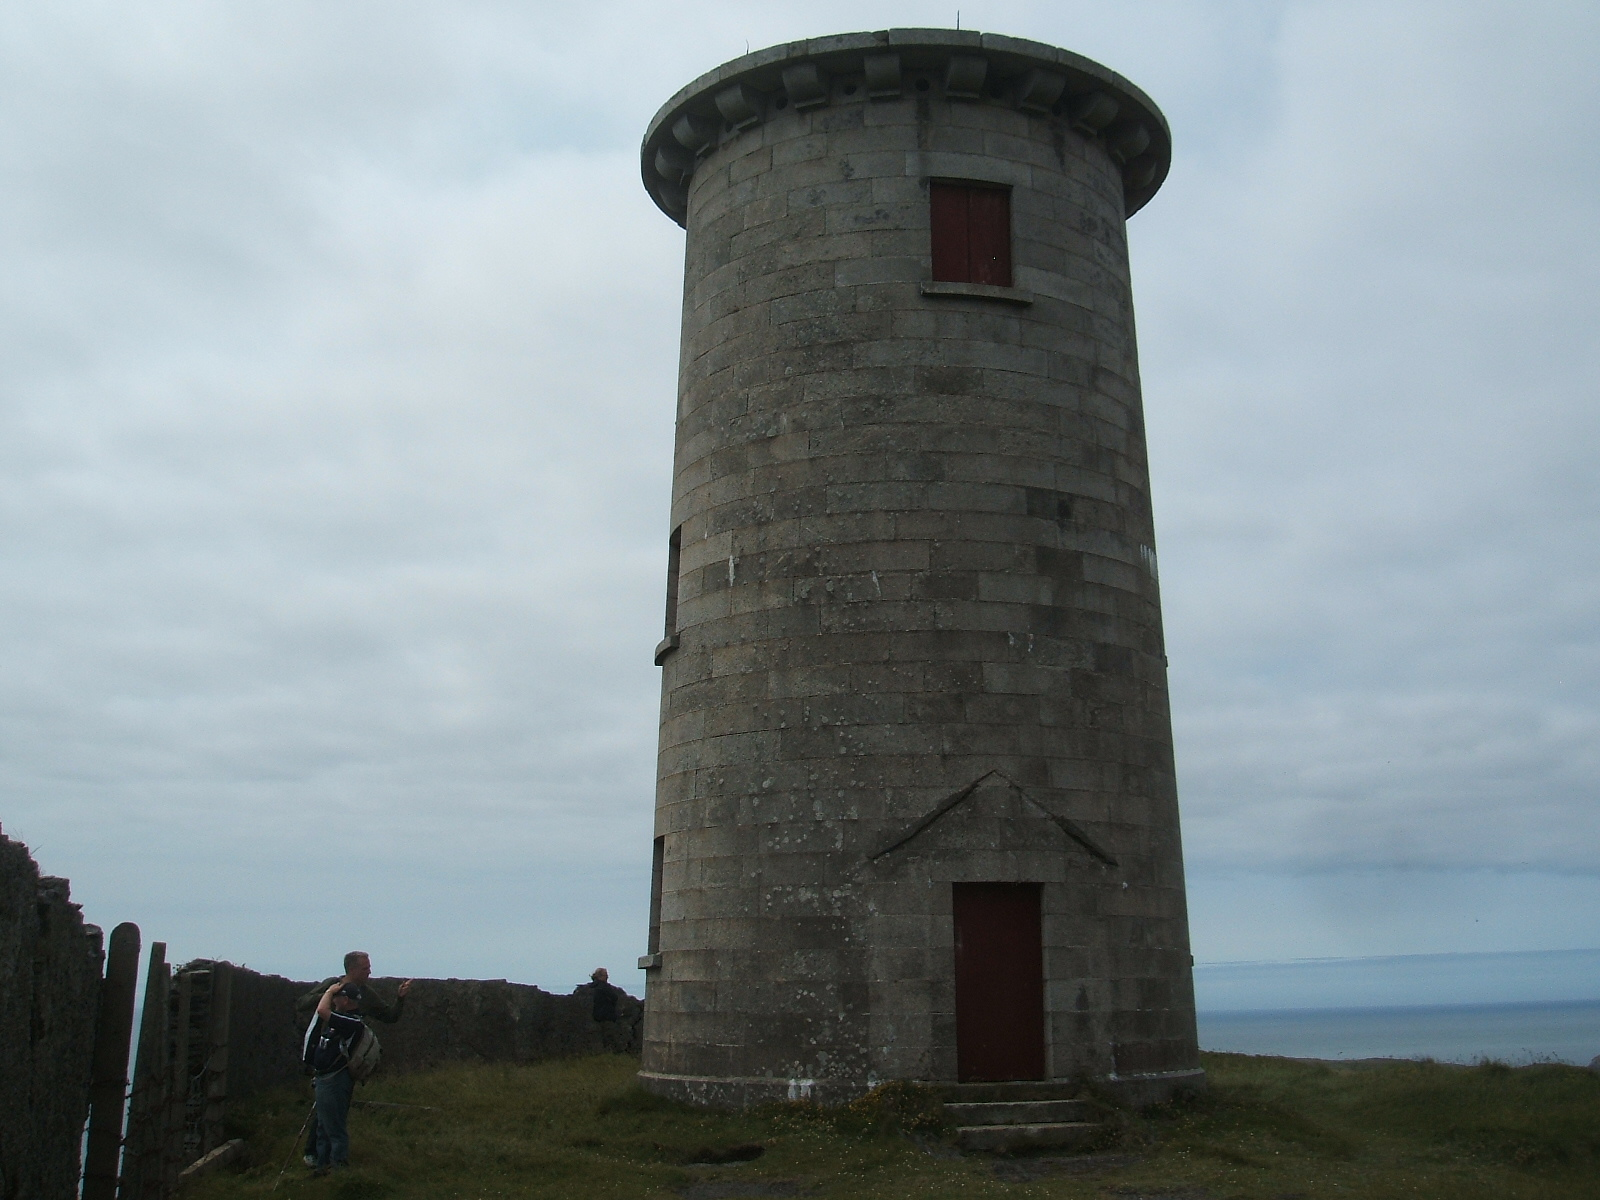 pete s irish lighthouses cape clear island the light is situated next to an old signal tower built in the early 1800s when the british authorities thought the french might attack